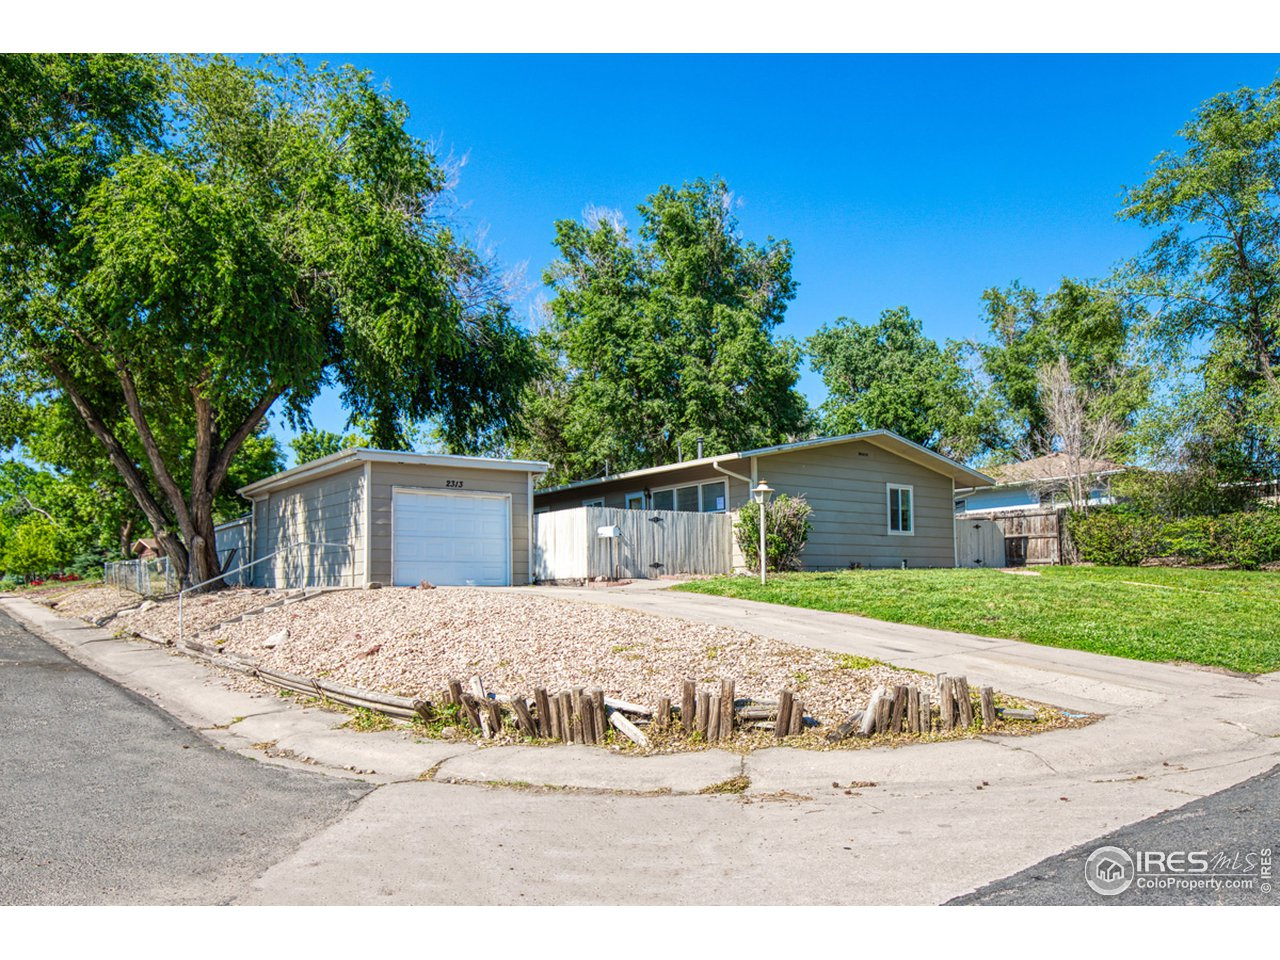 2313 W 25th St Rd, Greeley CO 80634